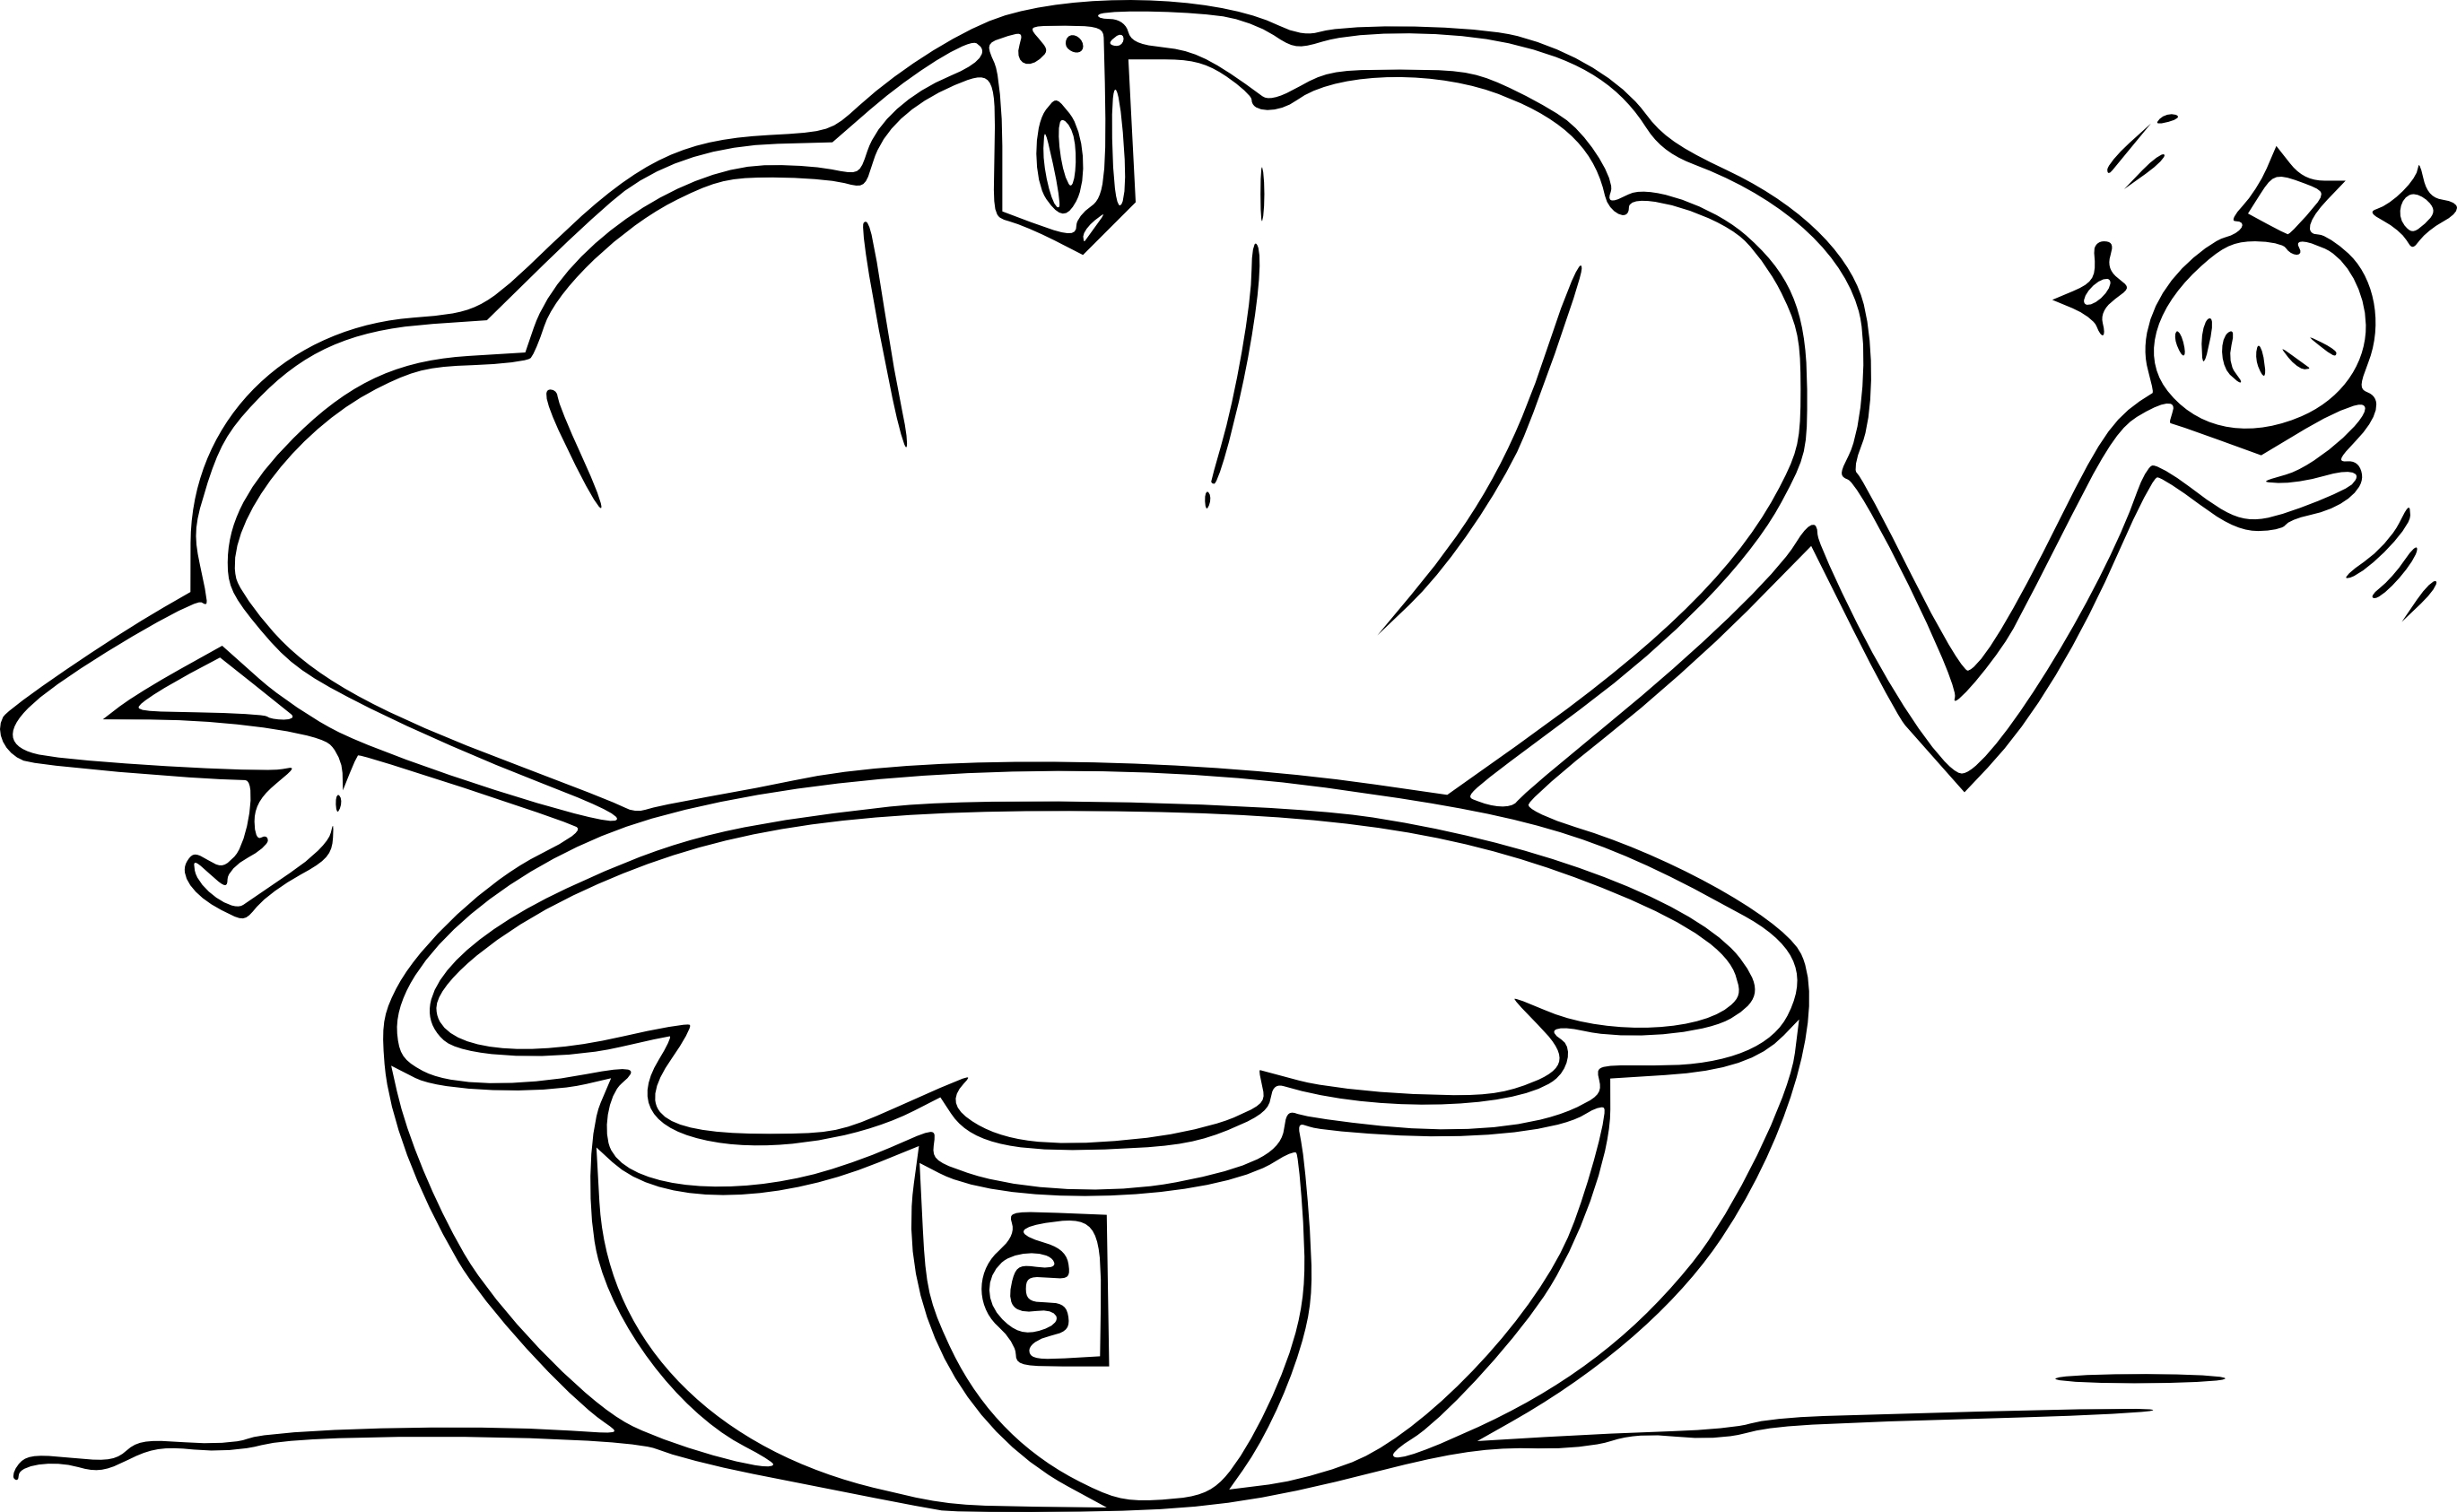 Coloriage Coquillage Ouvert Coloriagecoquillageouvert